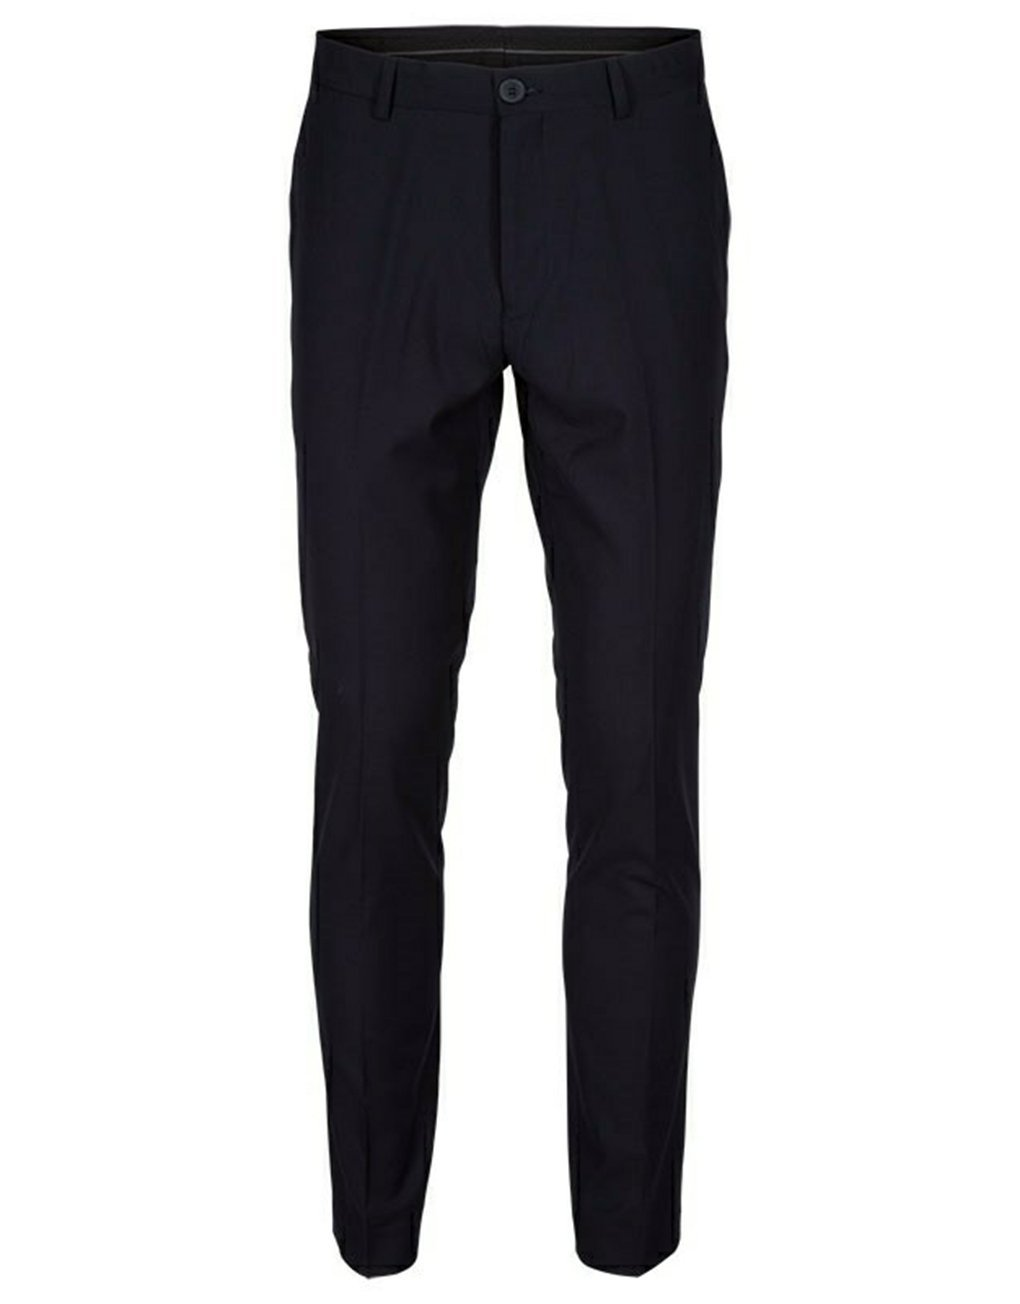 Tailored & Originals Leeds Pants